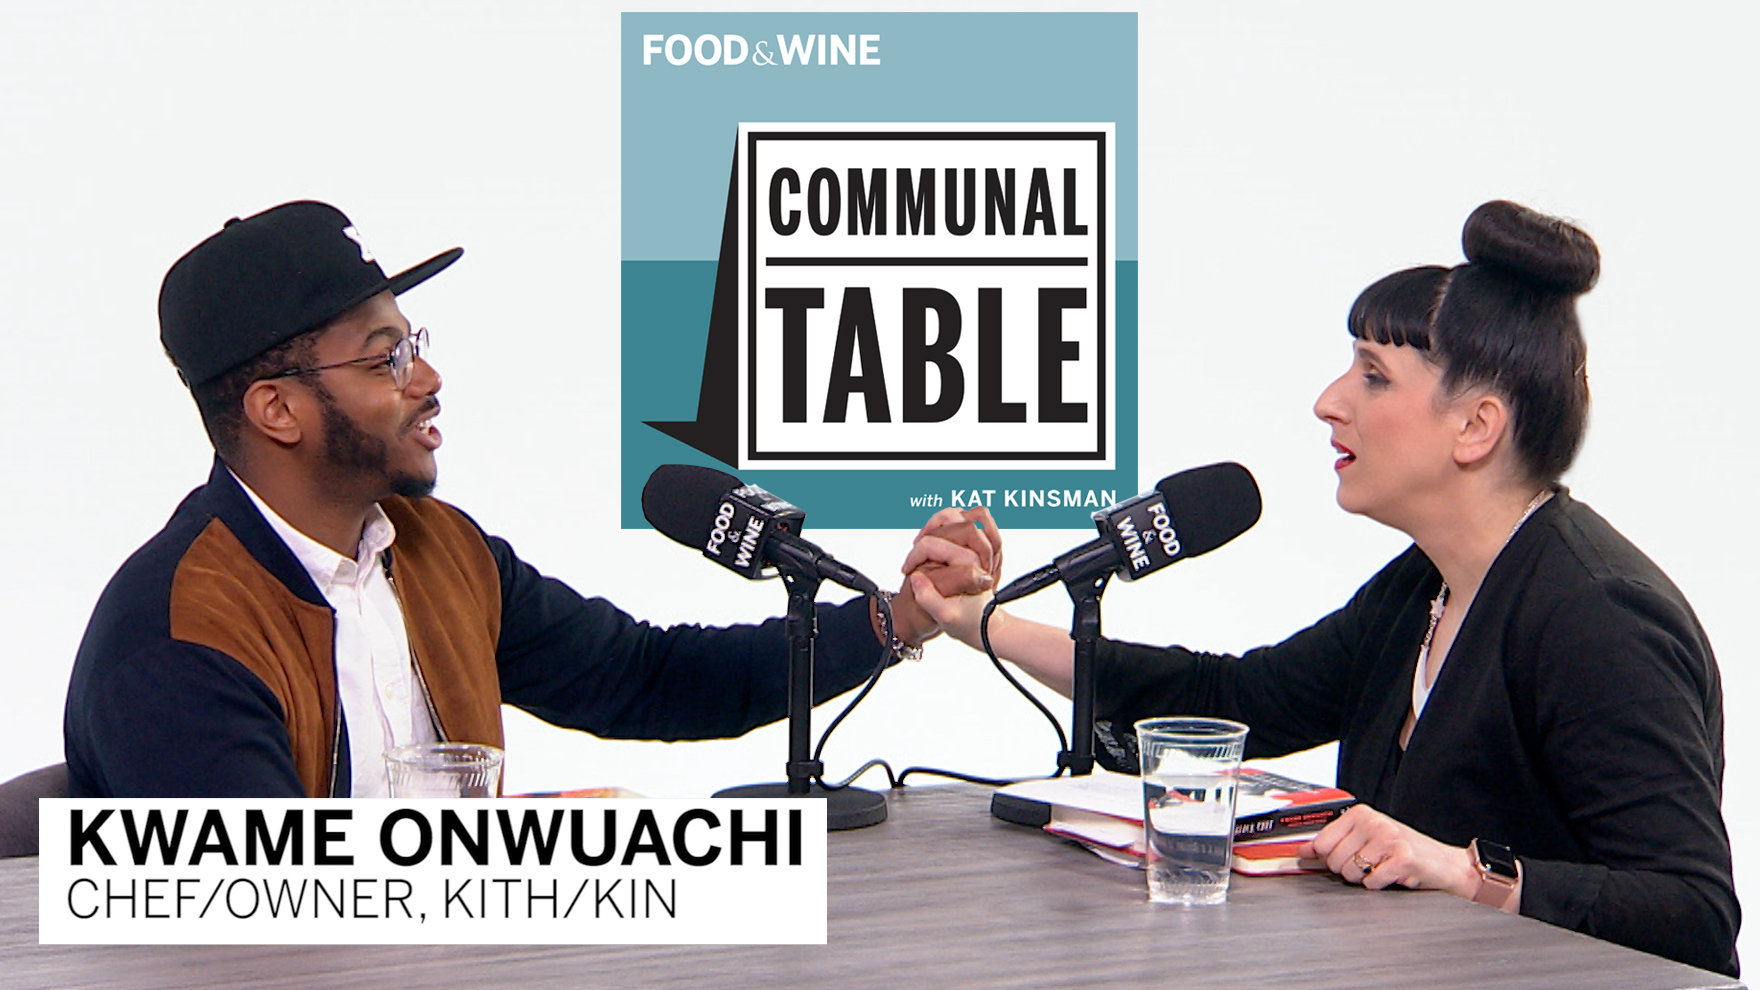 kwame-onwuachi-communal-table-FT-blog041819.jpg